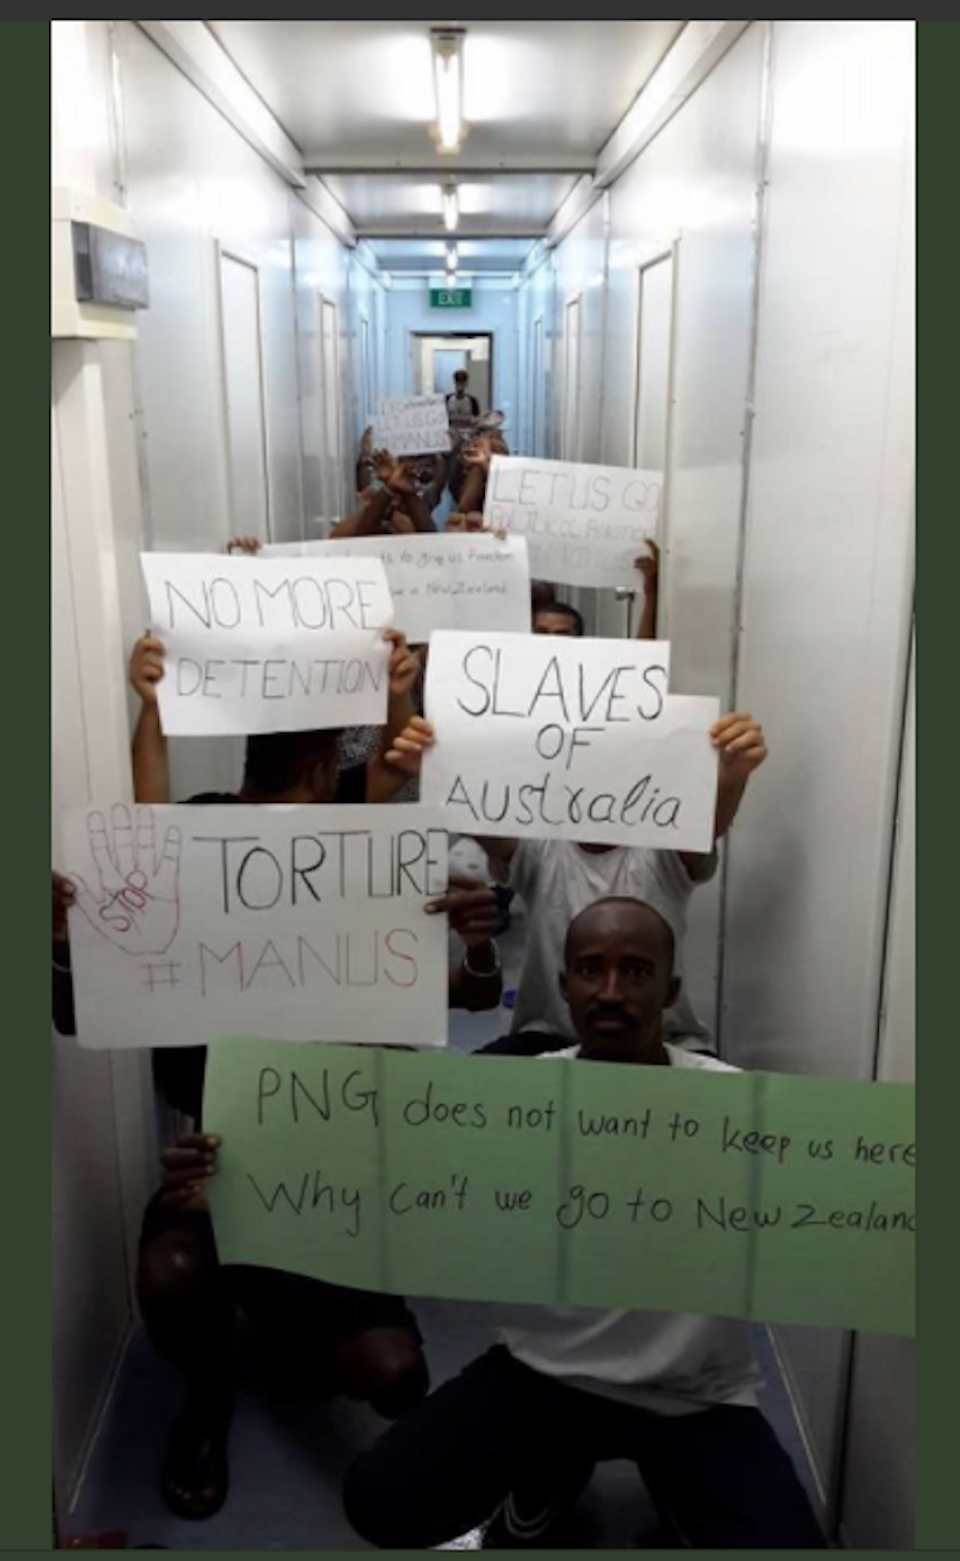 Refugees protest the government's decision to decommission the detention centre and send the men to alternative transit centres, denying them freedom. They have been imprisoned at Manus Island by Australia since 2013.